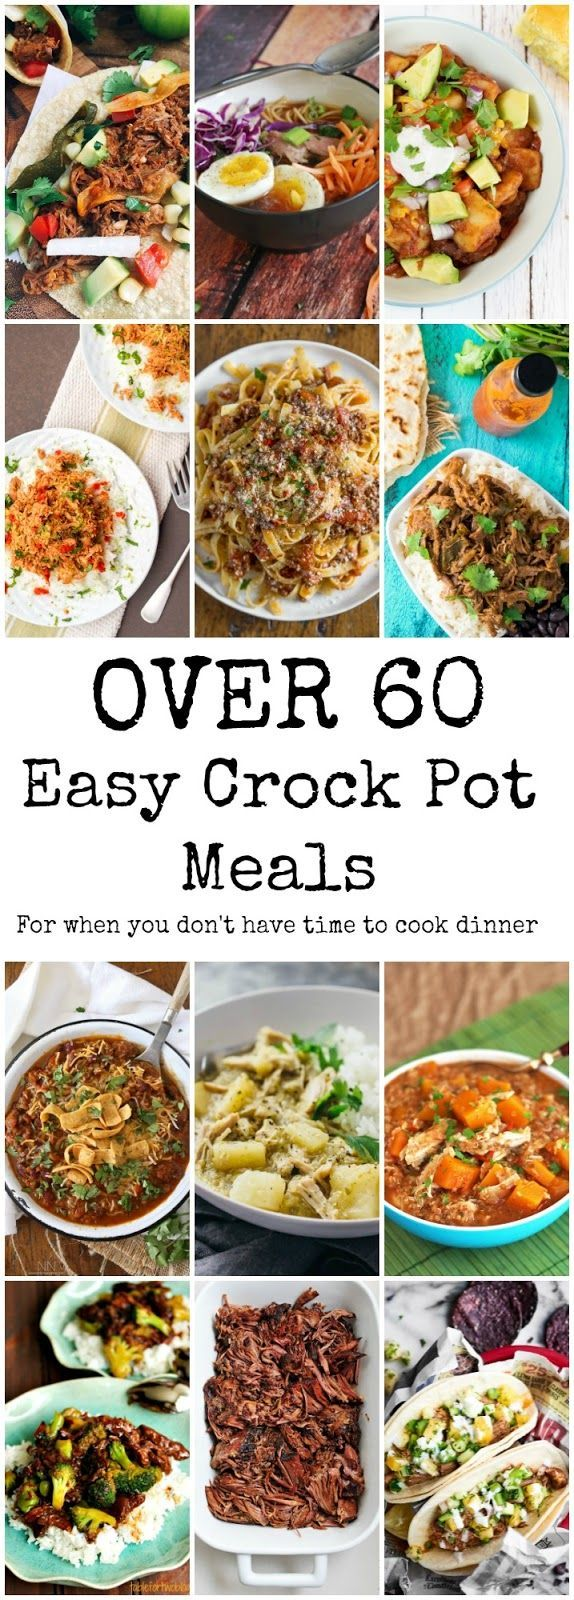 Over 60 awesome and super easy crock pot recipes for when you have literally no time to cook! These are dump, heat, and eat!